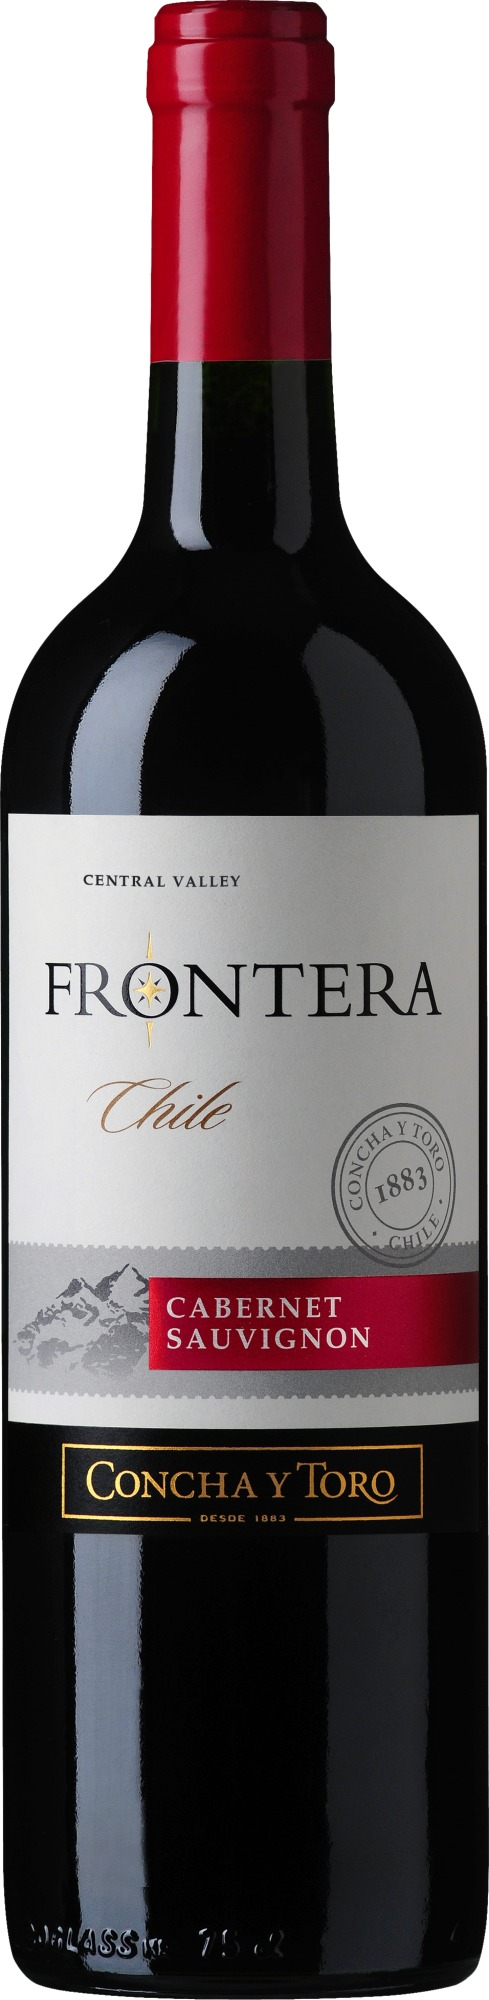 Frontera Cabernet Sauvignon Central Valley